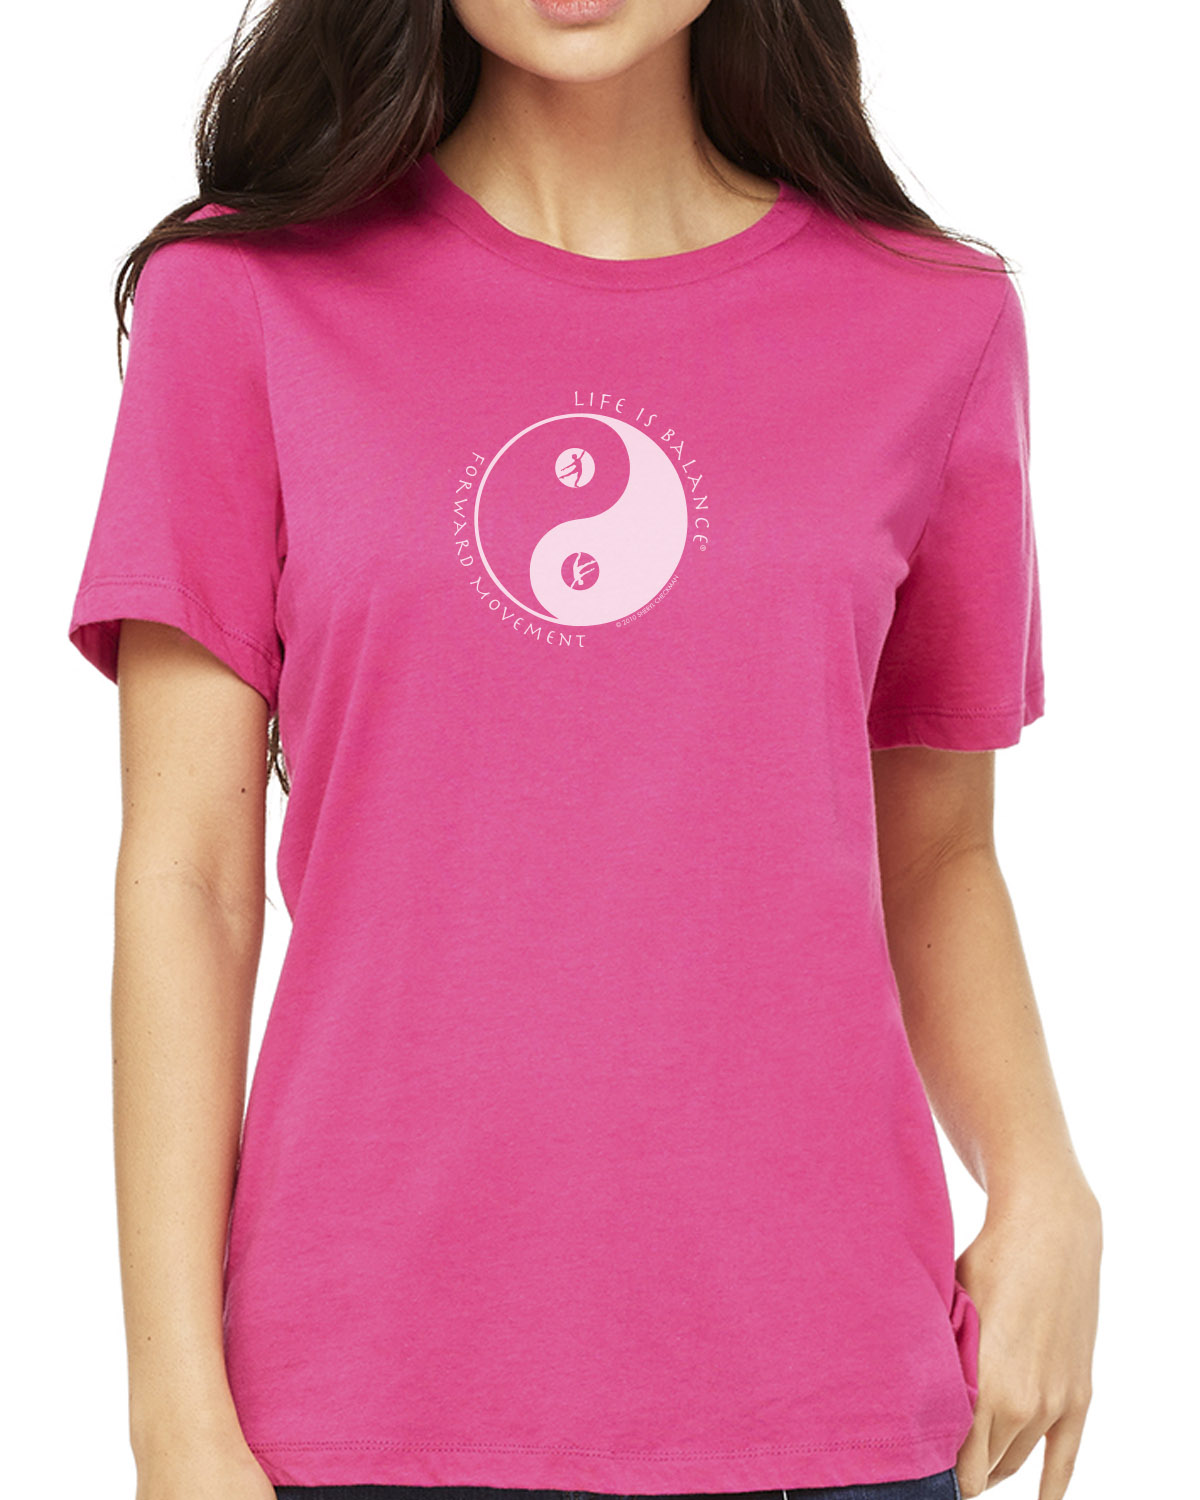 Women's short sleeve dance t-shirt (berry)